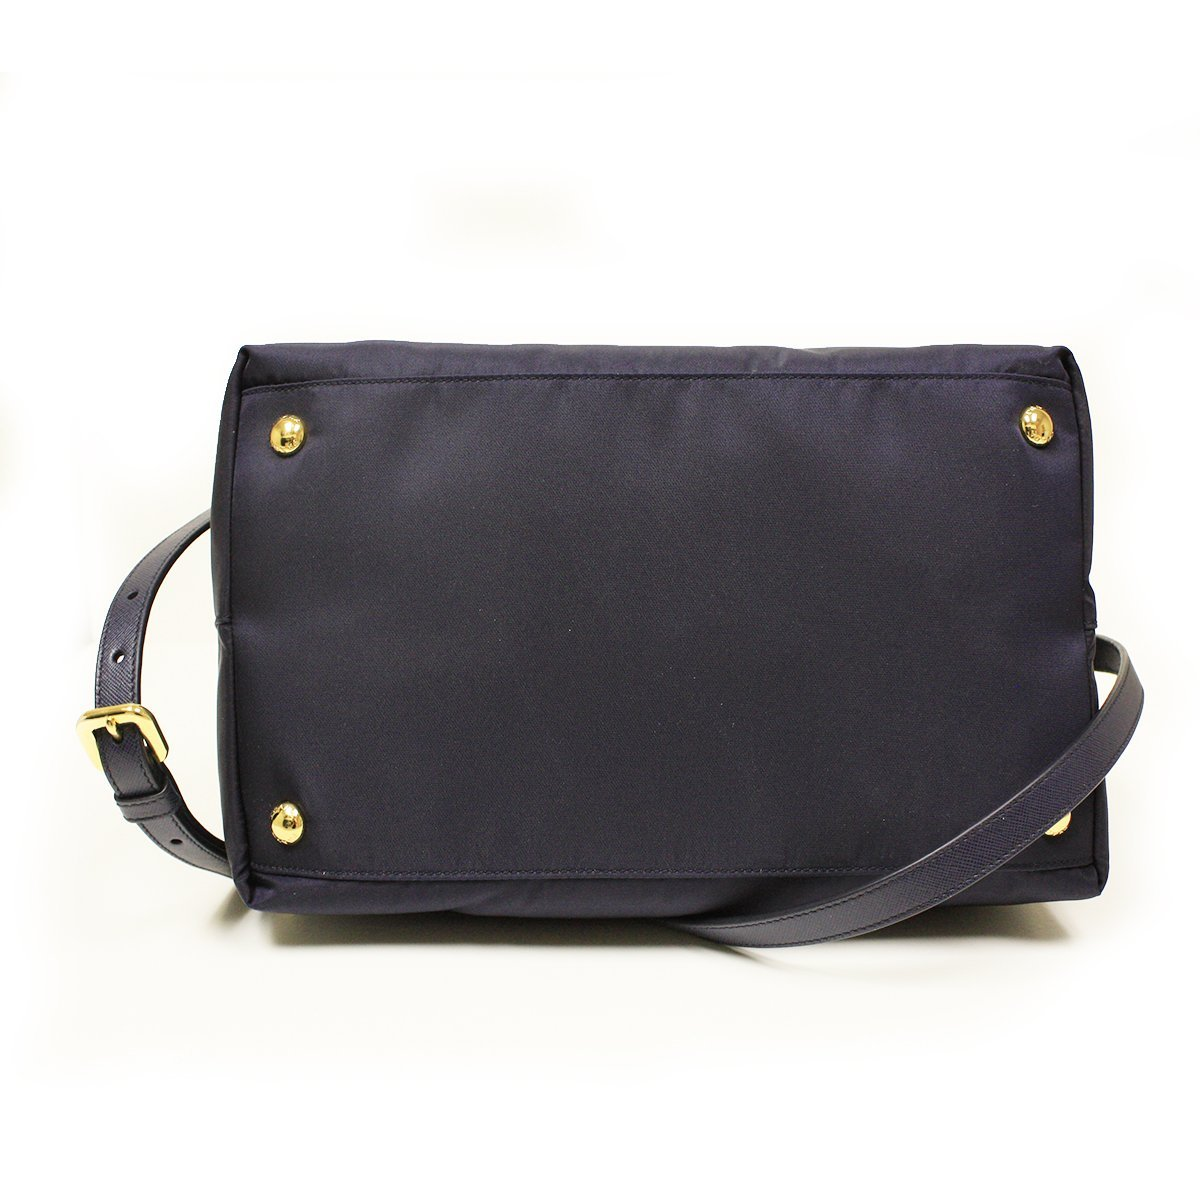 fd327a5622b291 Prada BN2106 Bleu Tessuto Saffian Navy Blue Nylon and Leather Shopping Tote  Bag: Handbags: Amazon.com